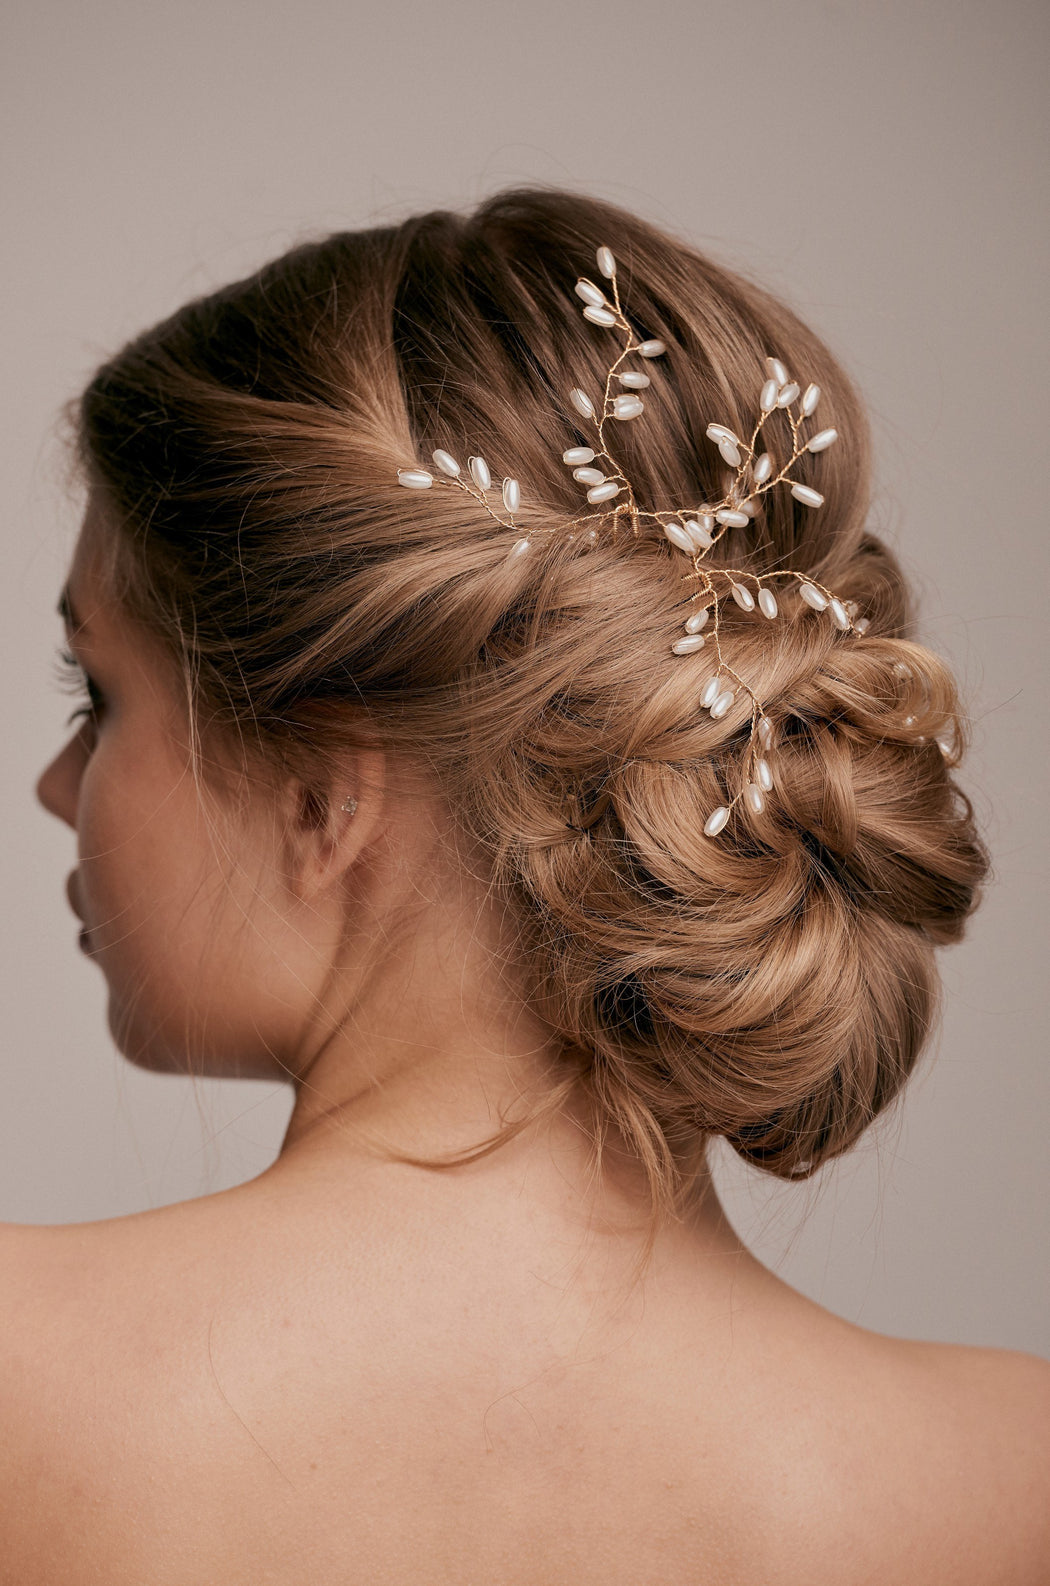 Ana gold pearl hair pin taylor and rose bridal hair ideas wedding guest hairstyle